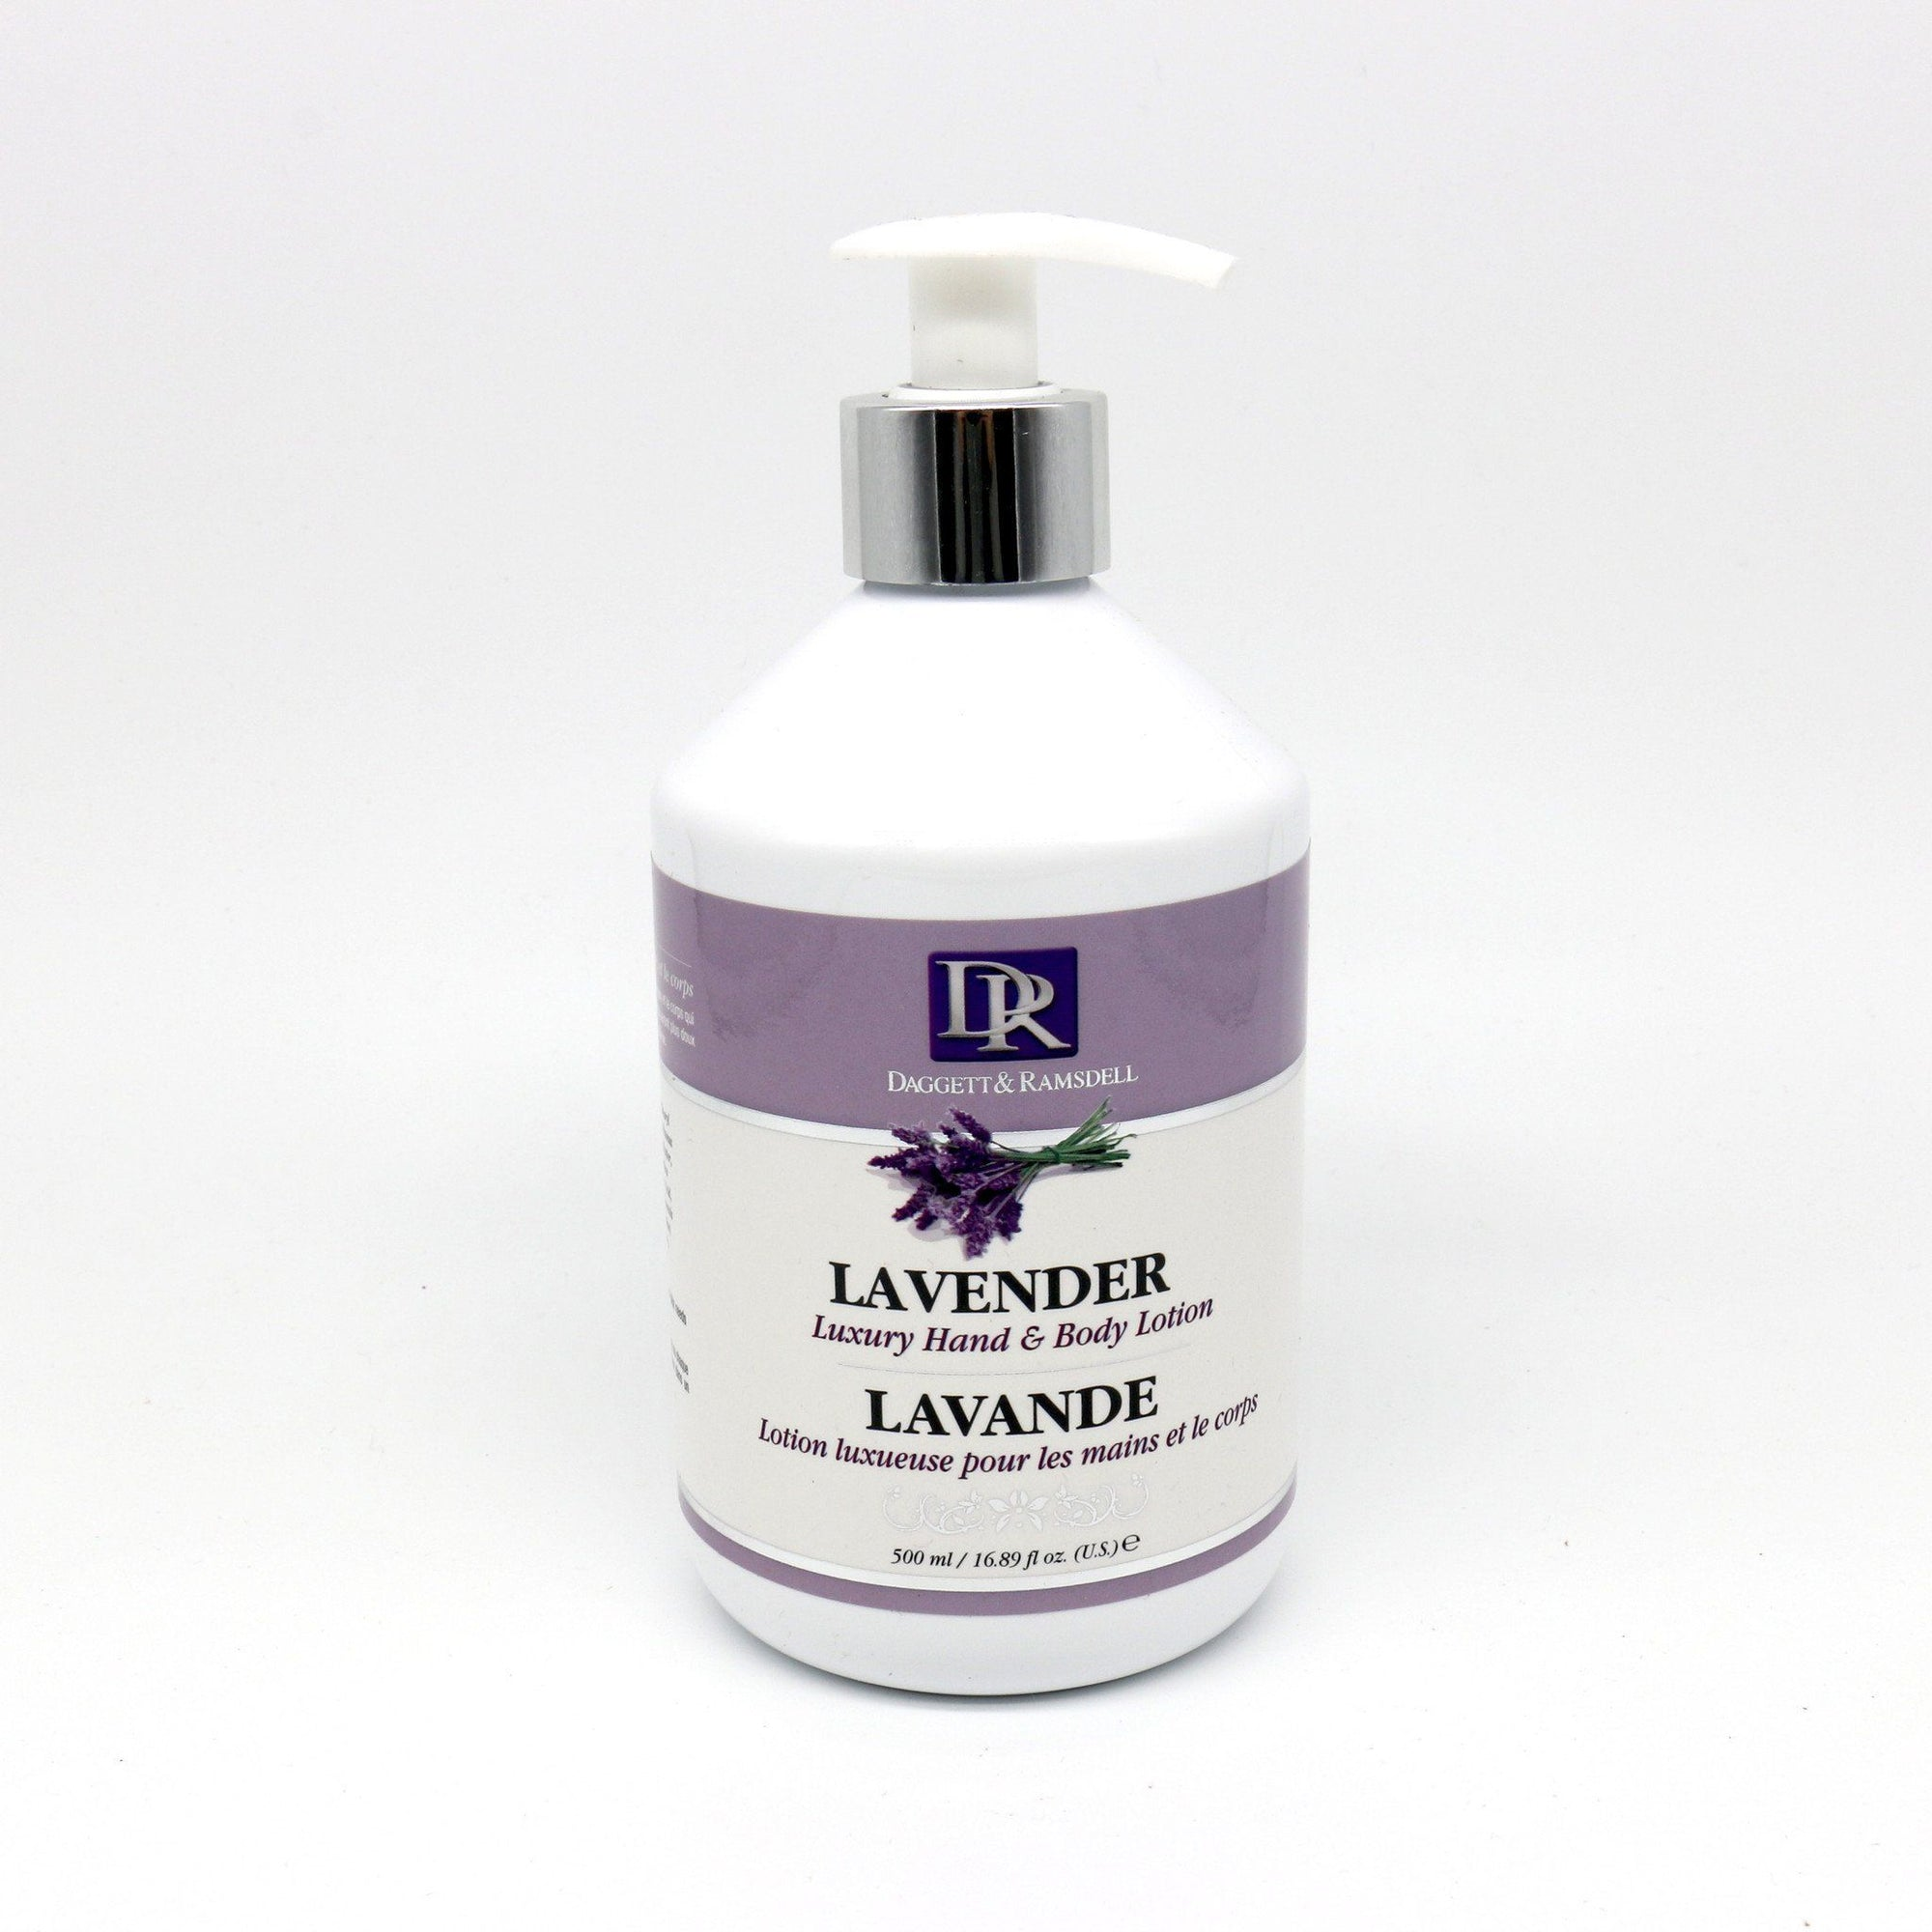 Daggett & Ramsdell Luxury Hand & Body Lotion, Lavender (PC)